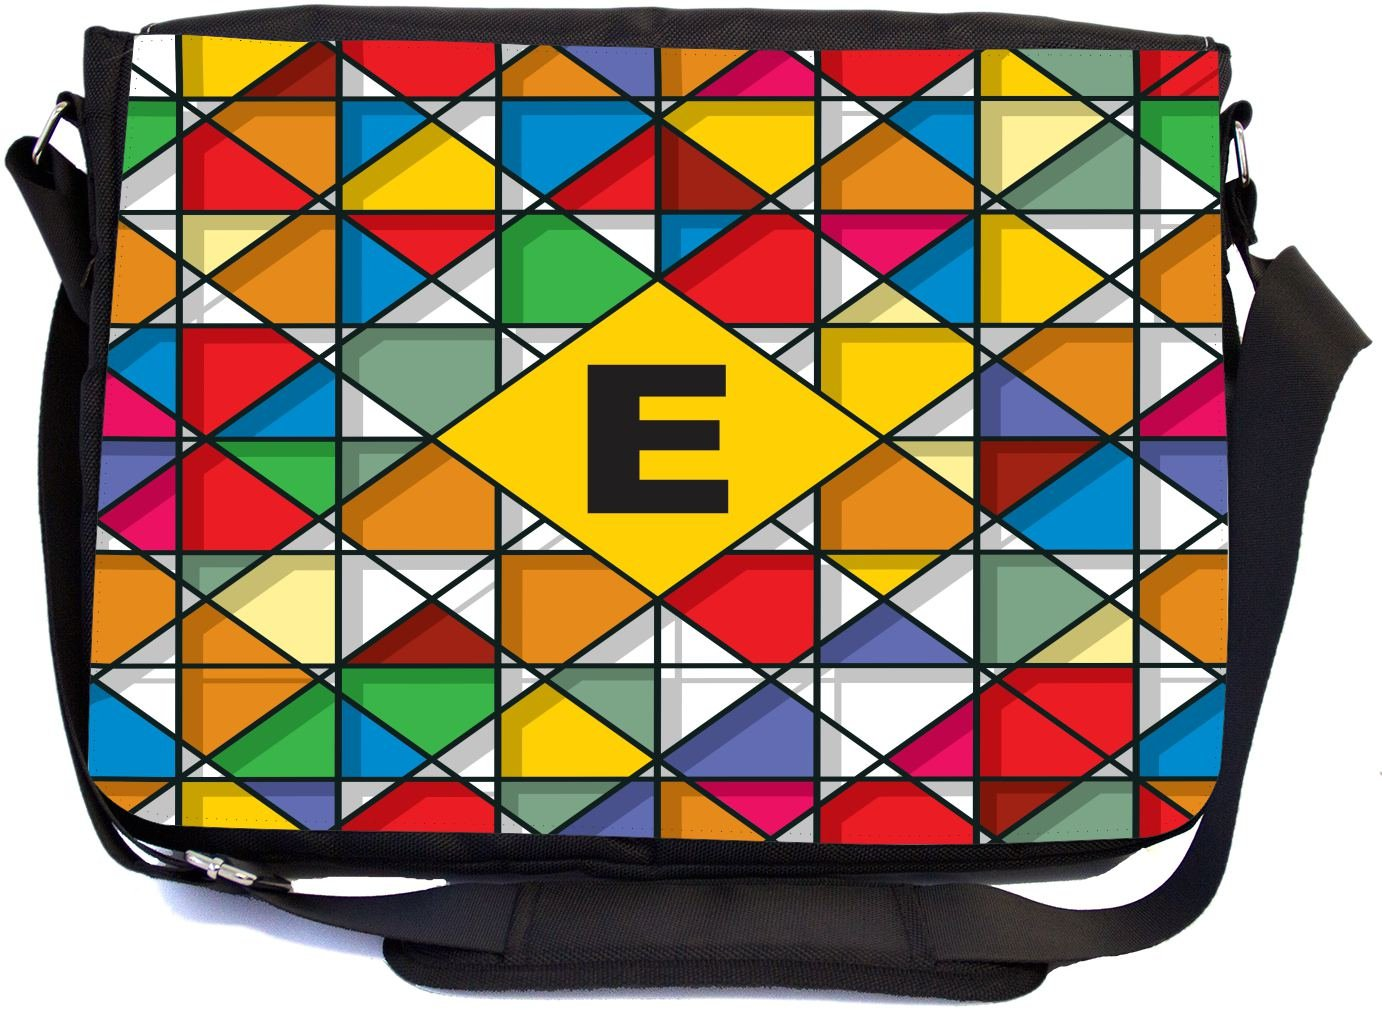 Rikki Knight Letter E Monogram Vibrant Colors Stained Glass Design Design Multifunctional Messenger Bag - School Bag - Laptop Bag - Includes Matching Compact Mirror